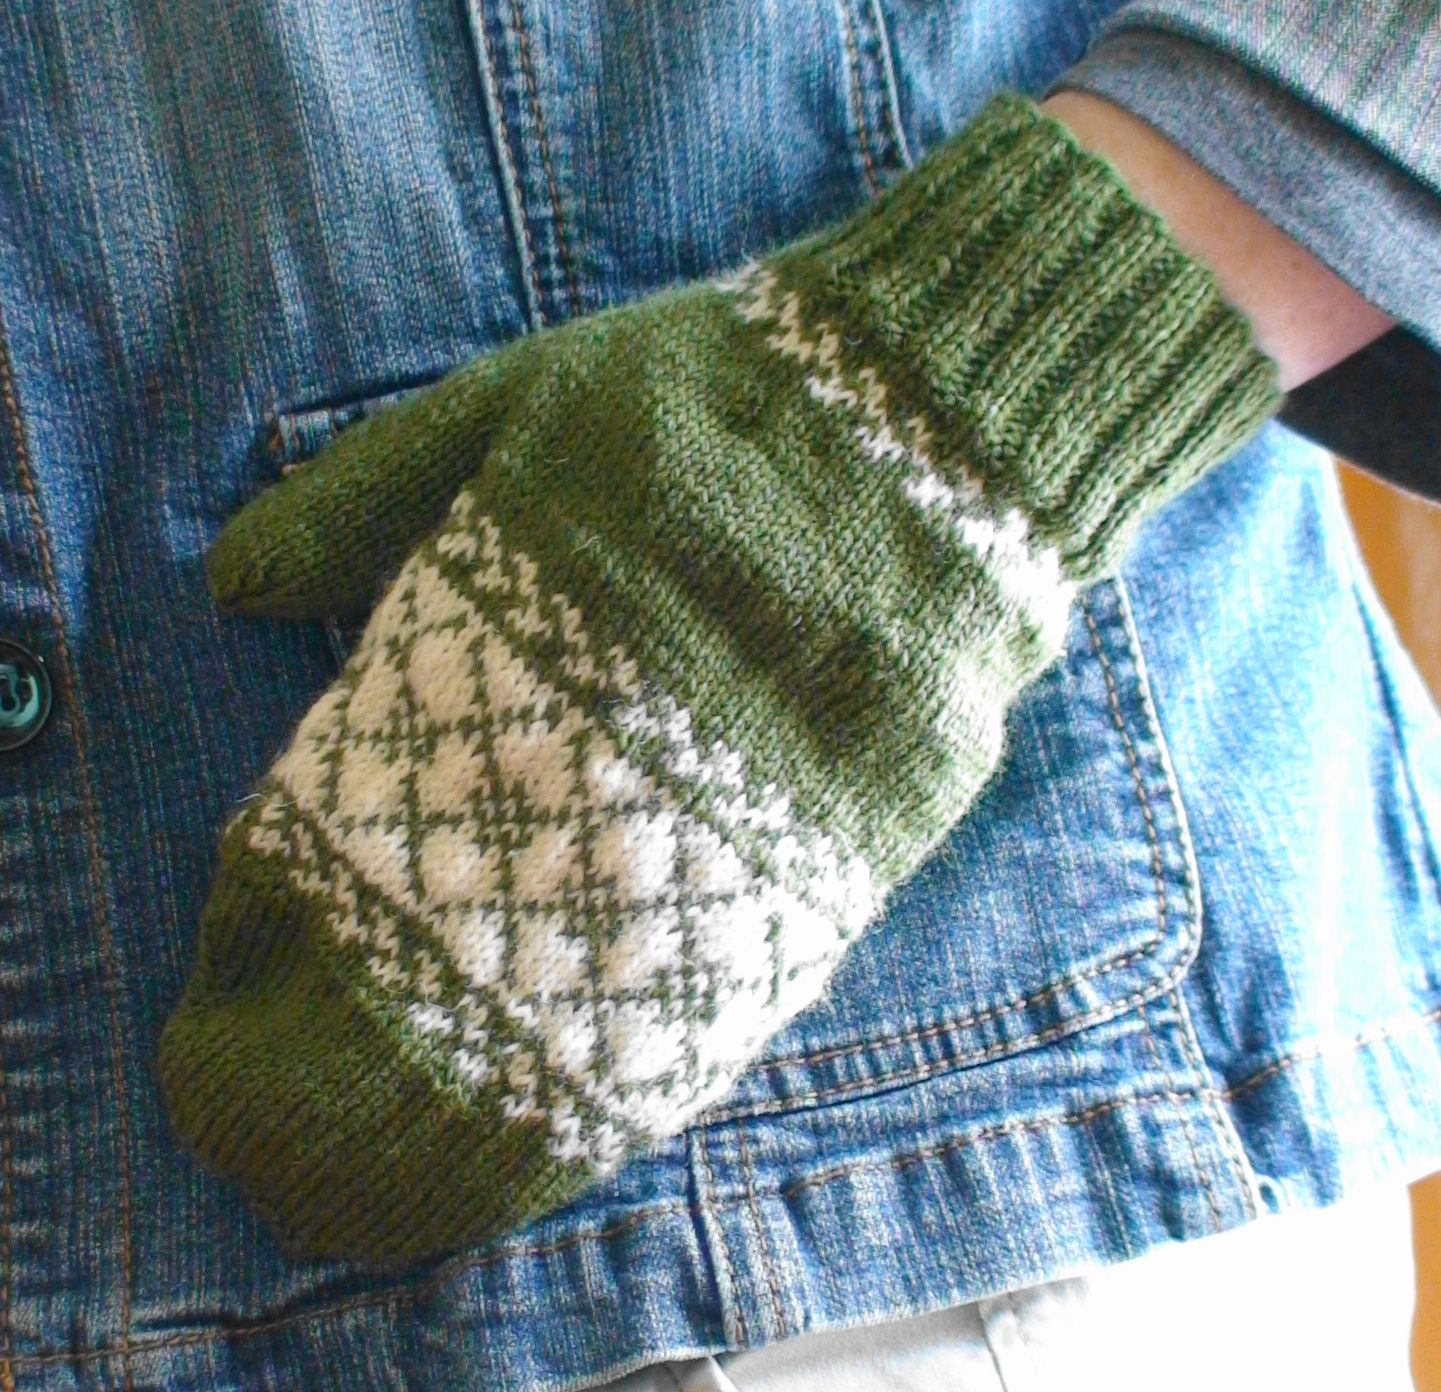 Knit Argyle Pattern : Argyle Mitten Collection Pattern - Knitting Patterns and Crochet Patterns fro...